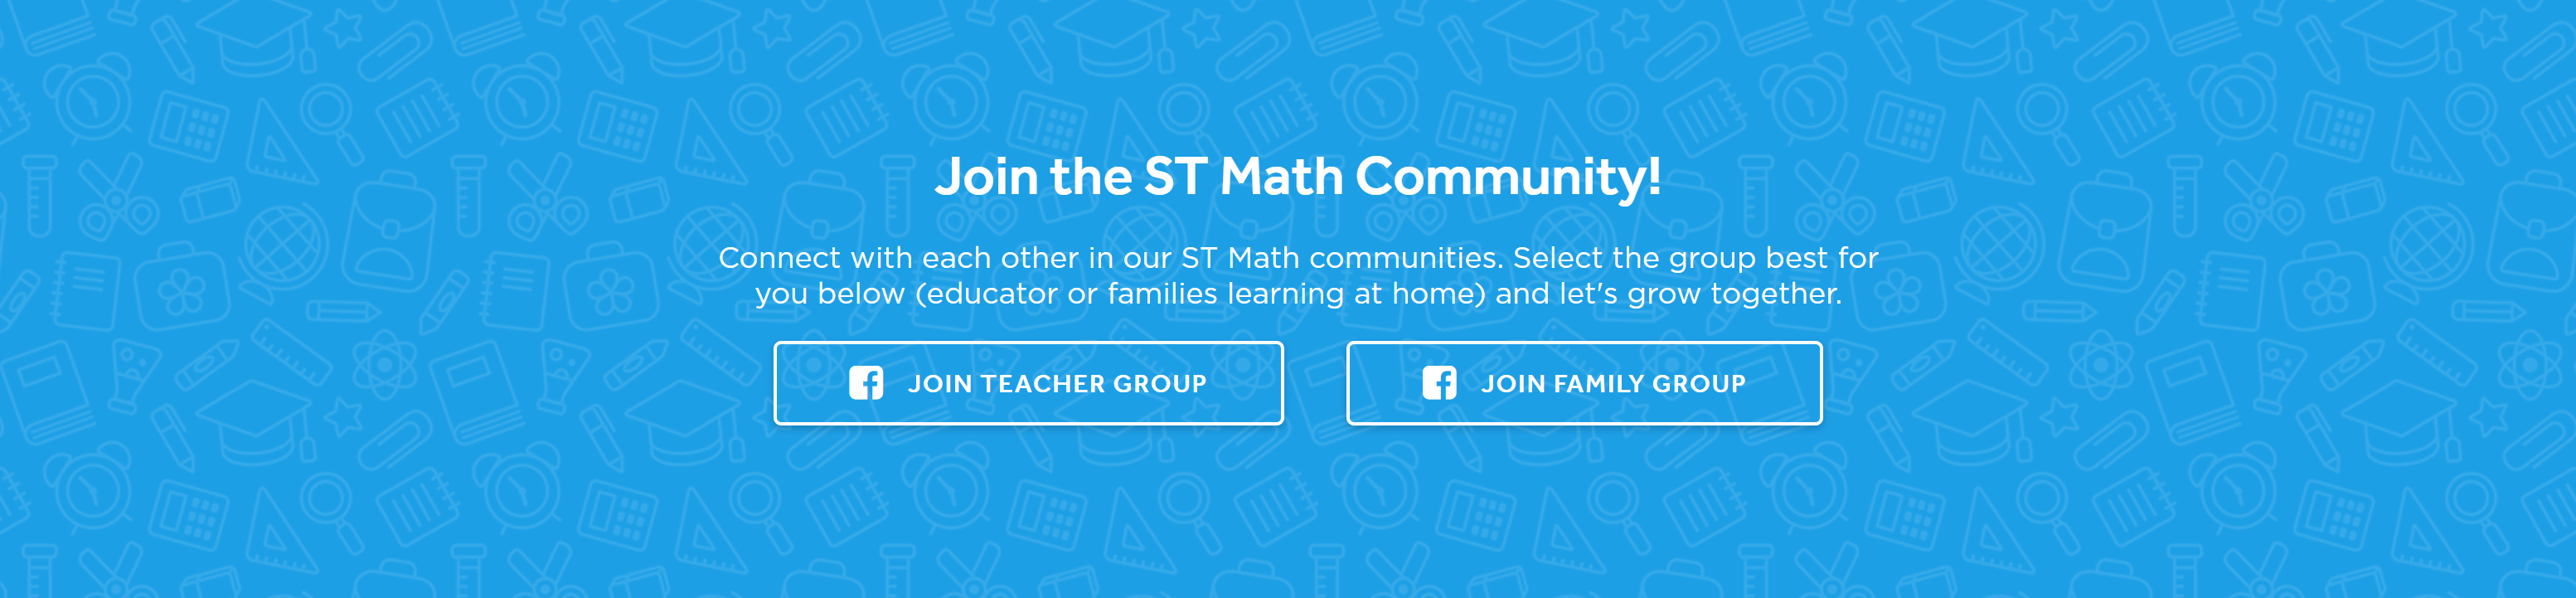 st-math-community-instruction-resources-page